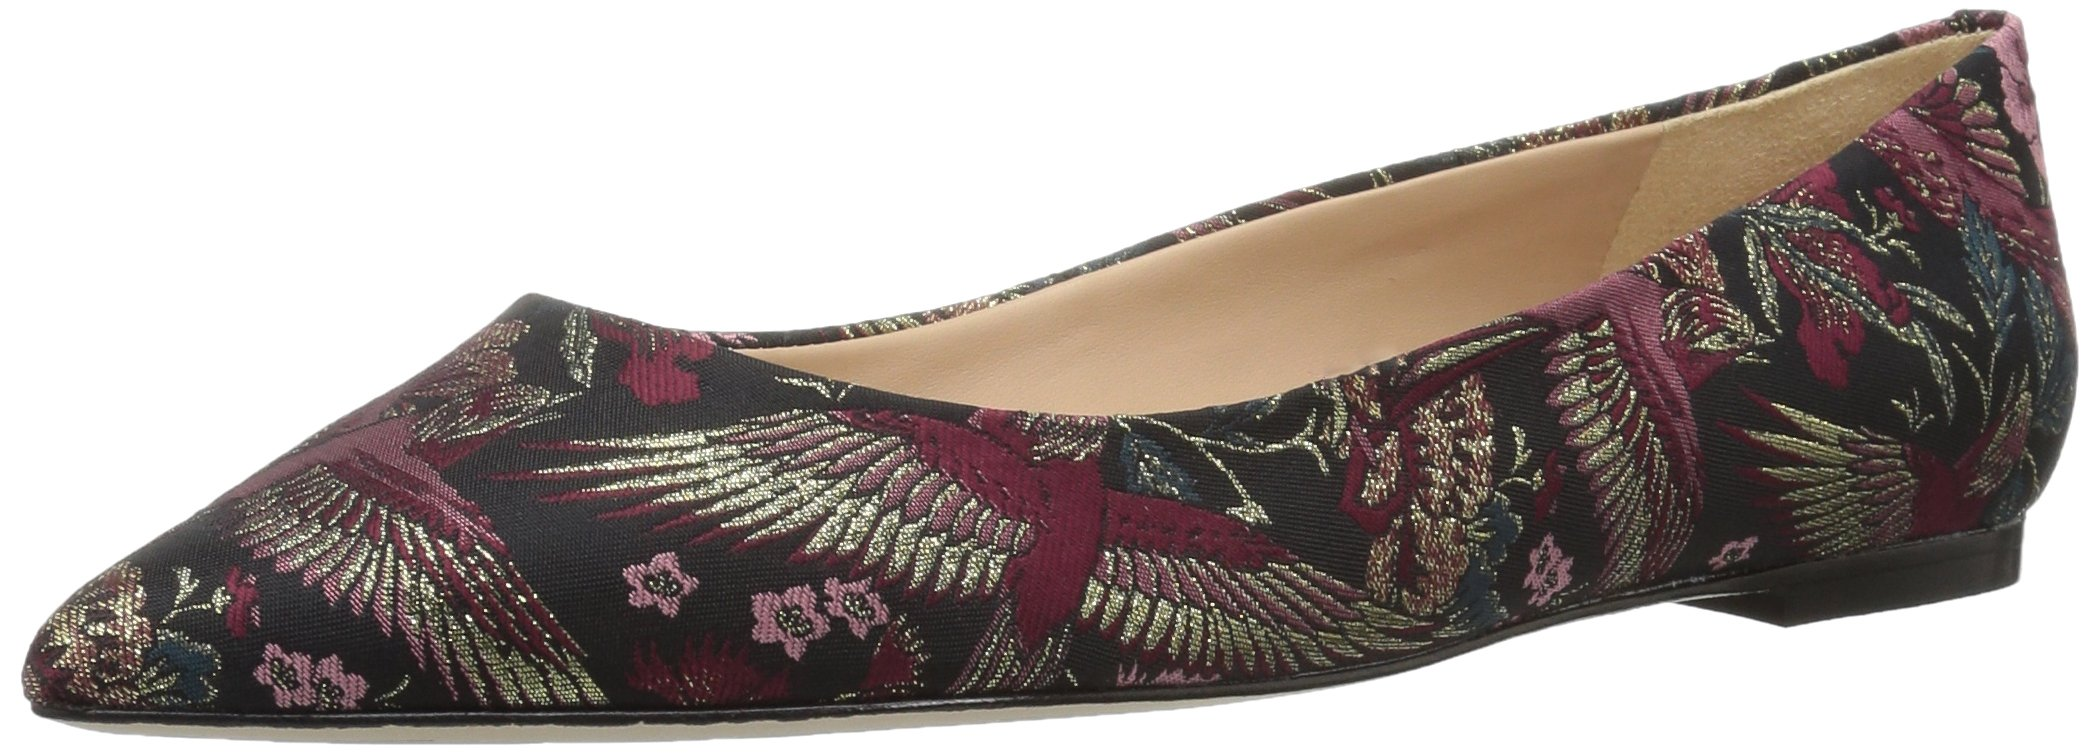 Sam Edelman Women's Rae Ballet Flat, Black/Multi Majestic Bird Jacquard, 7.5 Medium US